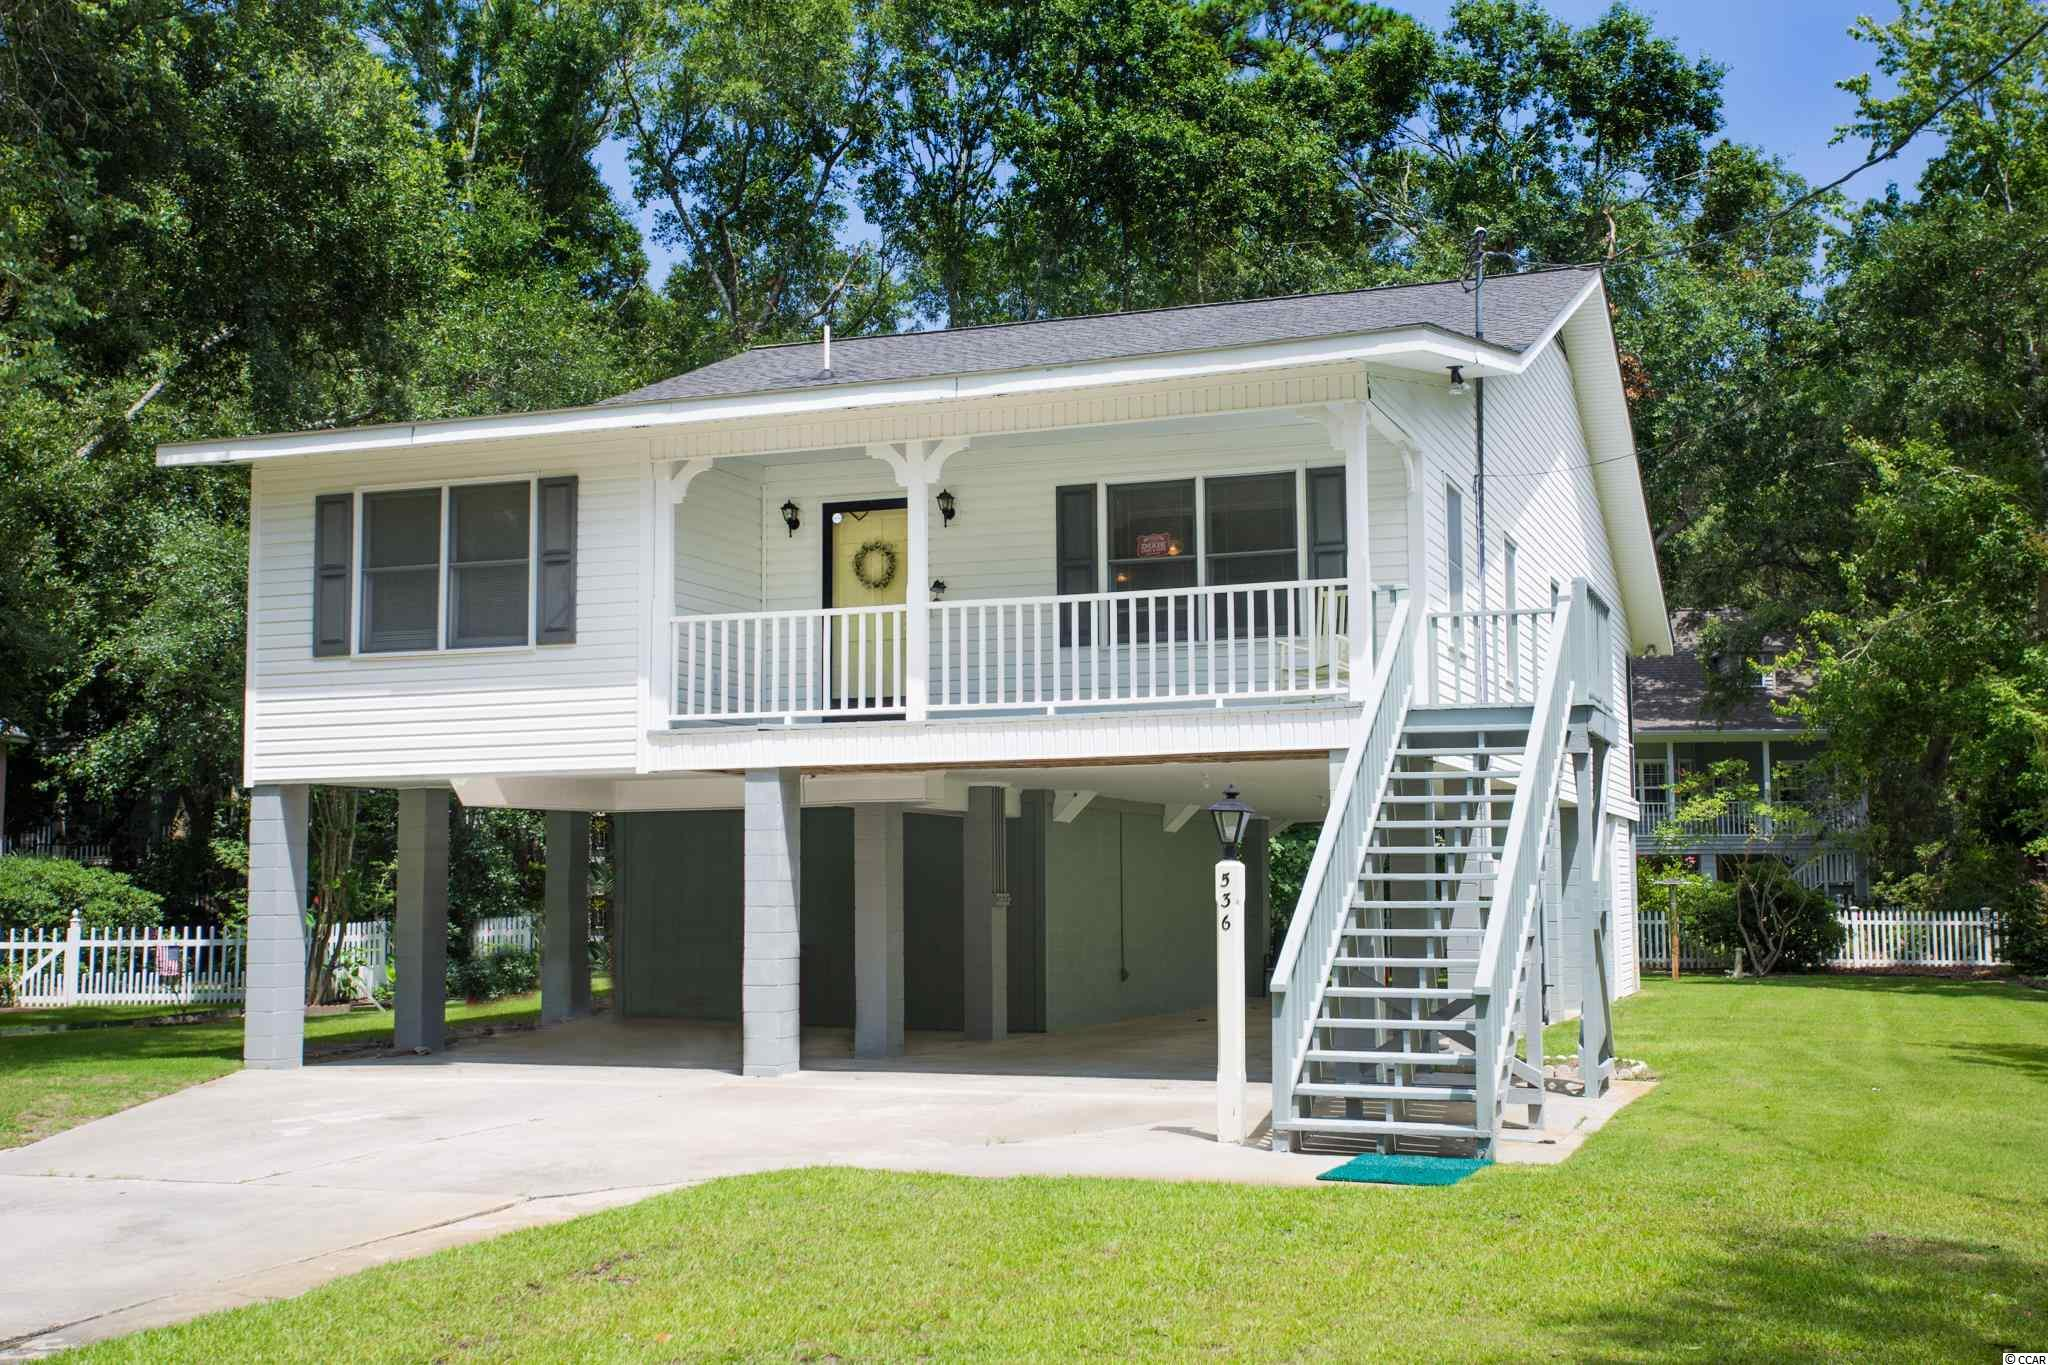 Very nice 3BR, 2BA raised beach house in beautiful North Litchfield.  Low HOA is optional but current owner pays it.  Features Hardwood Floors, Laminate, Linoleum and Vinyl.  Underground 4-car carport with elevator to upstairs.  Large master suite, master bath with Shower.  Two guest bedrooms share second bath with shower.  There is an outdoor shower underground perfect for washing the sand off after enjoying the beach.  Fully equipped kichen with Range, Refrigerator, Dishwasher and Garbage Disposal.  Washer and Dryer convey.  Gorgeous grounds and large front deck to enjoy the views.  Attic storage from front of house to back.  See today!!